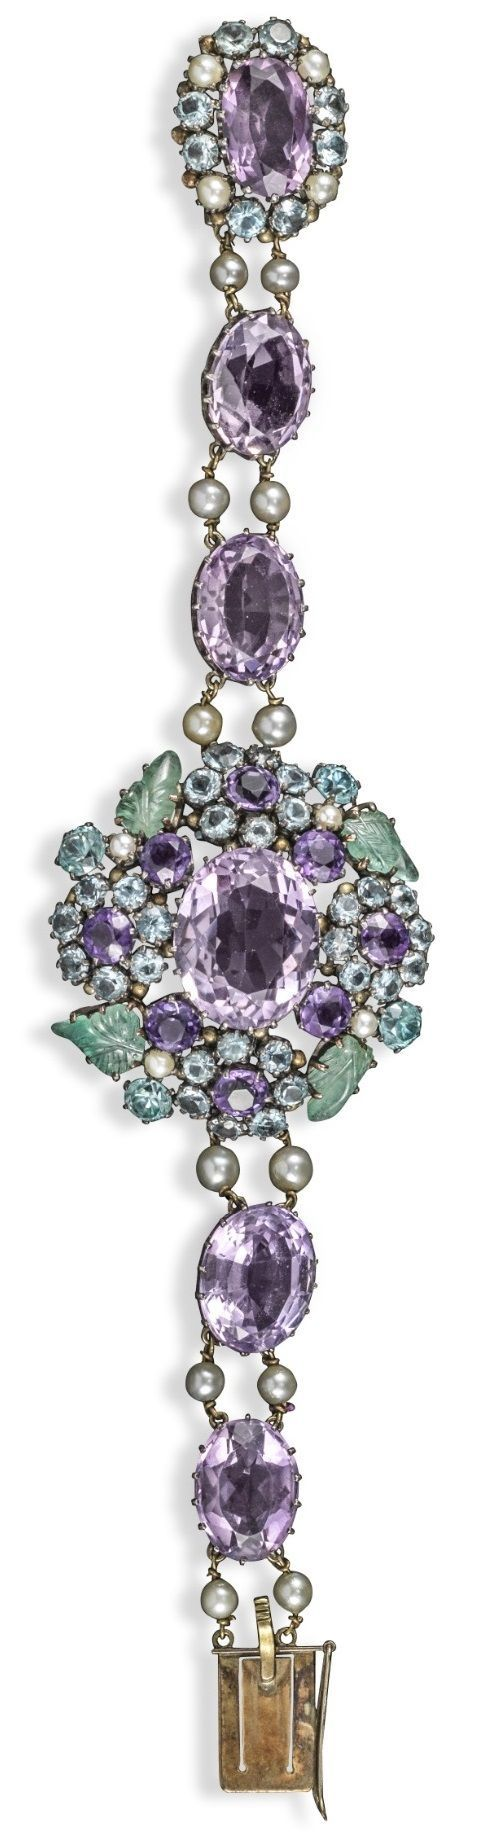 Dorrie Nossiter (attrib). An Arts and Crafts bracelet, The centre cluster is set with an oval-shaped amethyst, further clusters of amethysts, blue zircons and blue stones and foliate carved emeralds. Further oval-shaped amethysts alternately set with pair